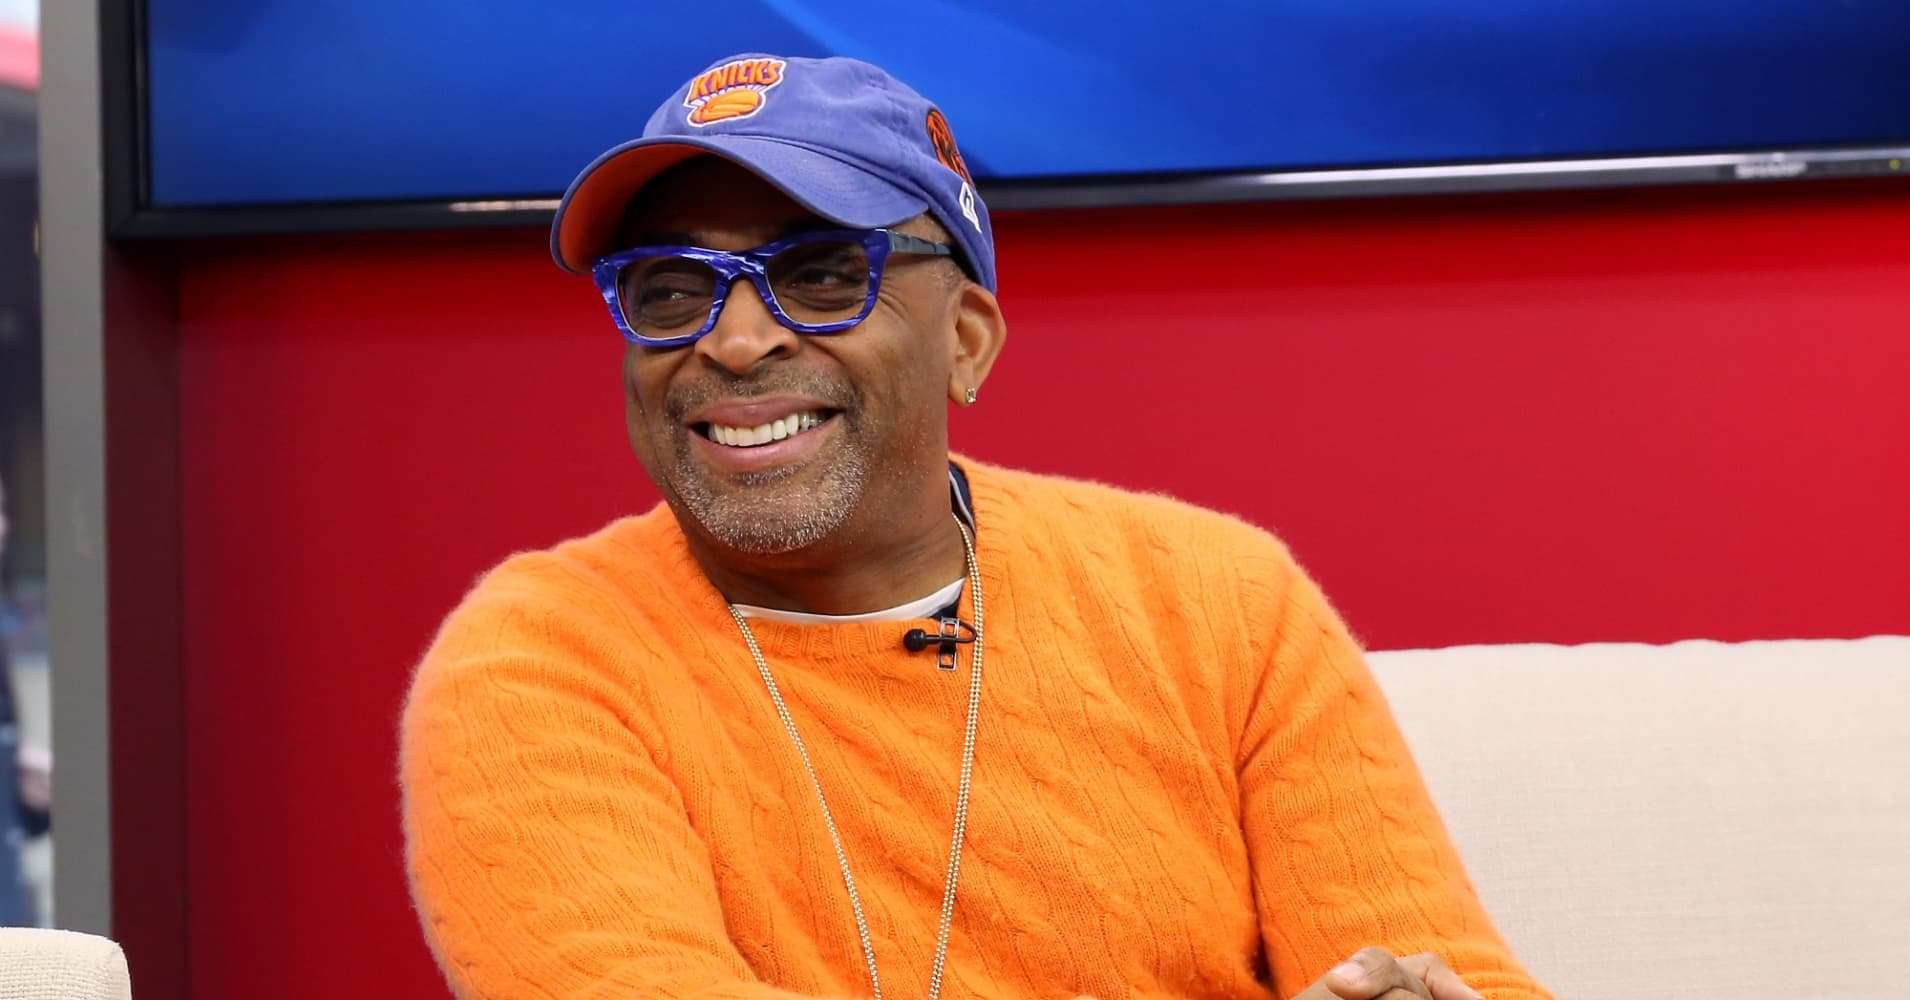 Spike Lee is a film director, producer, writer, and actor